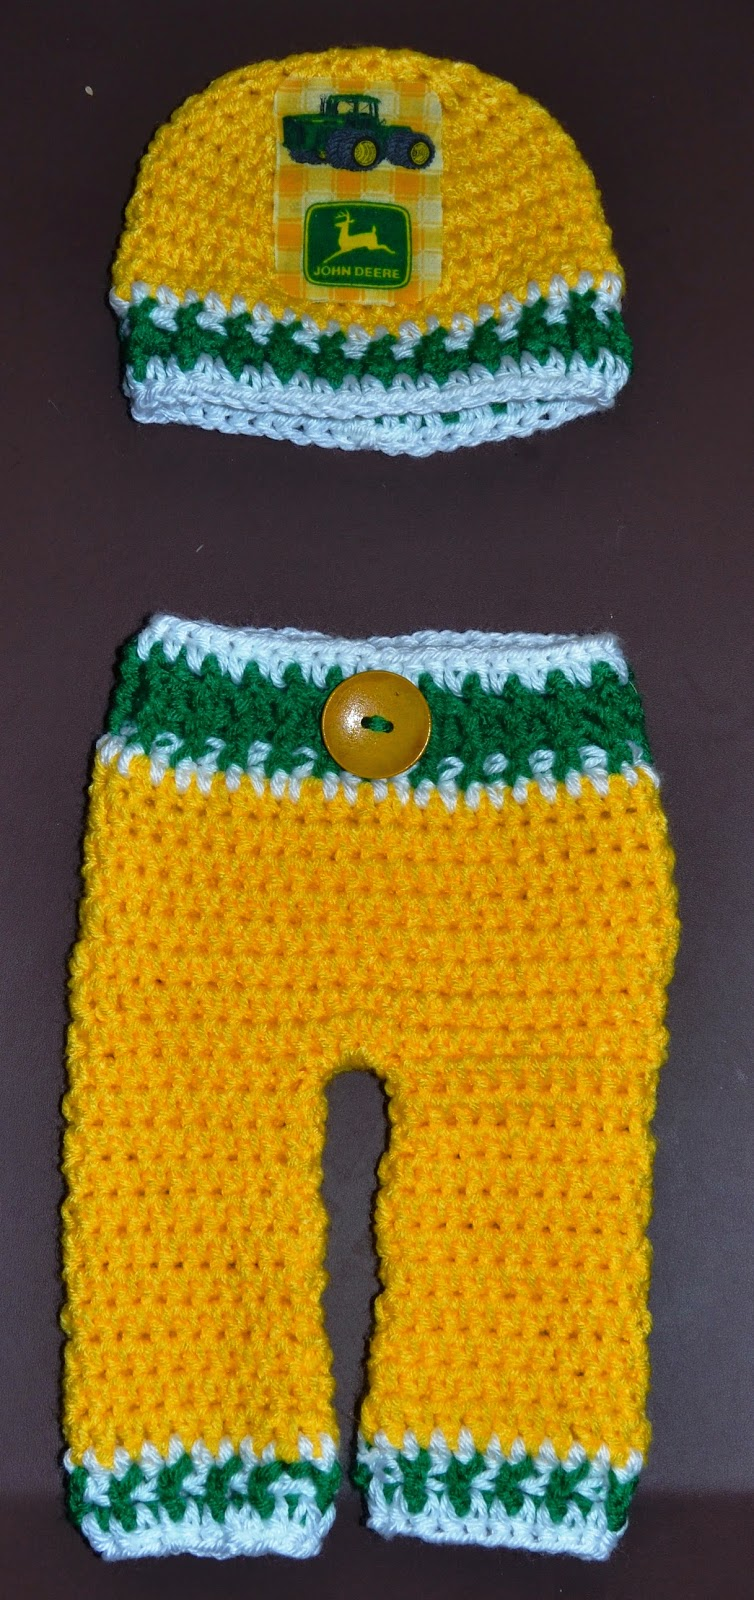 John Deere Baby Outfit